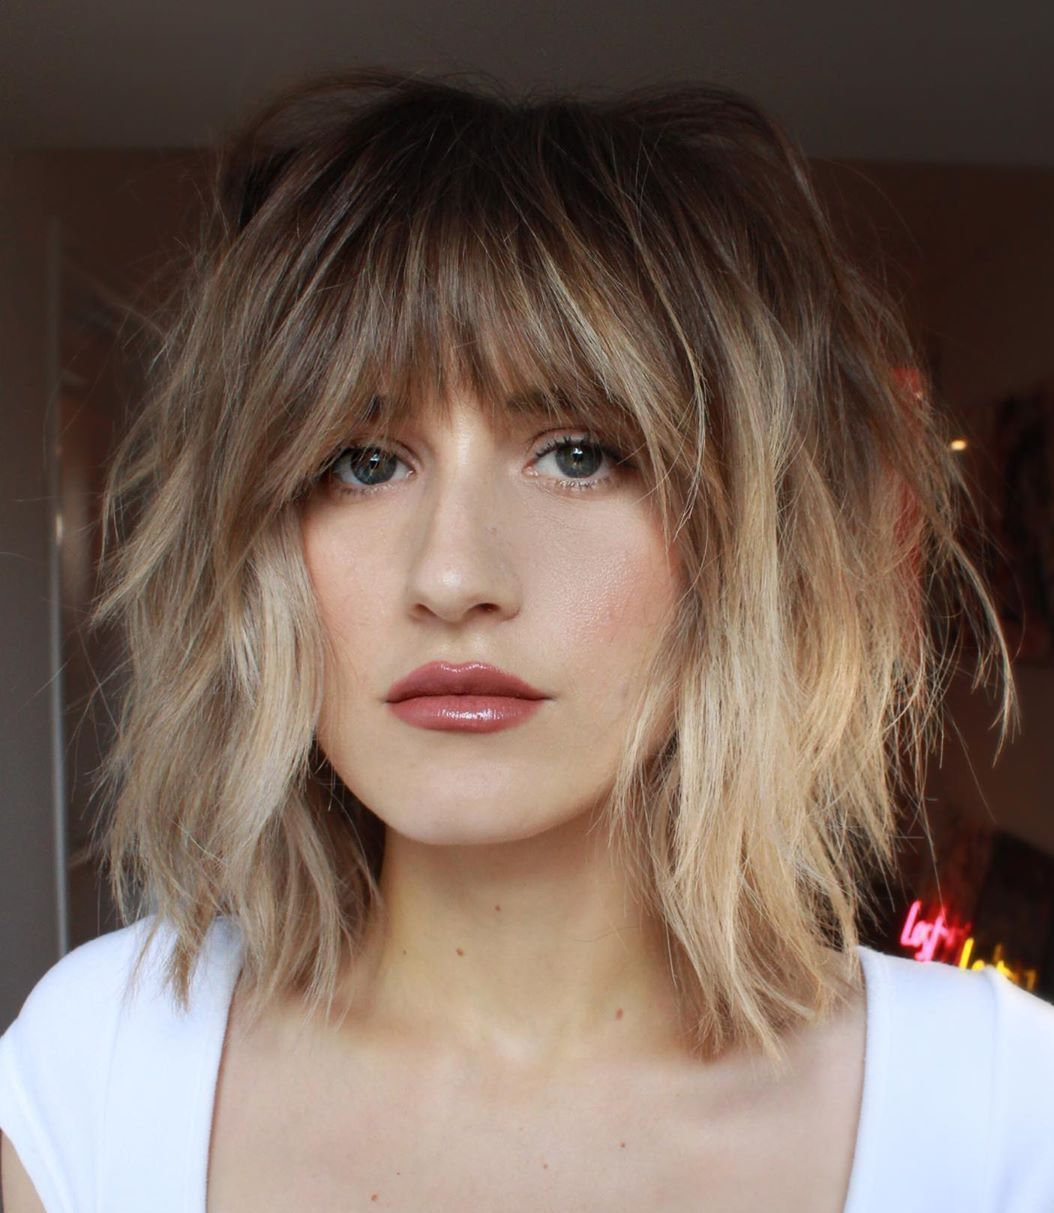 50 Most Trendy And Flattering Bangs For Round Faces In 2021 Hadviser Bangs For Round Face Bangs With Medium Hair Hairstyles With Bangs